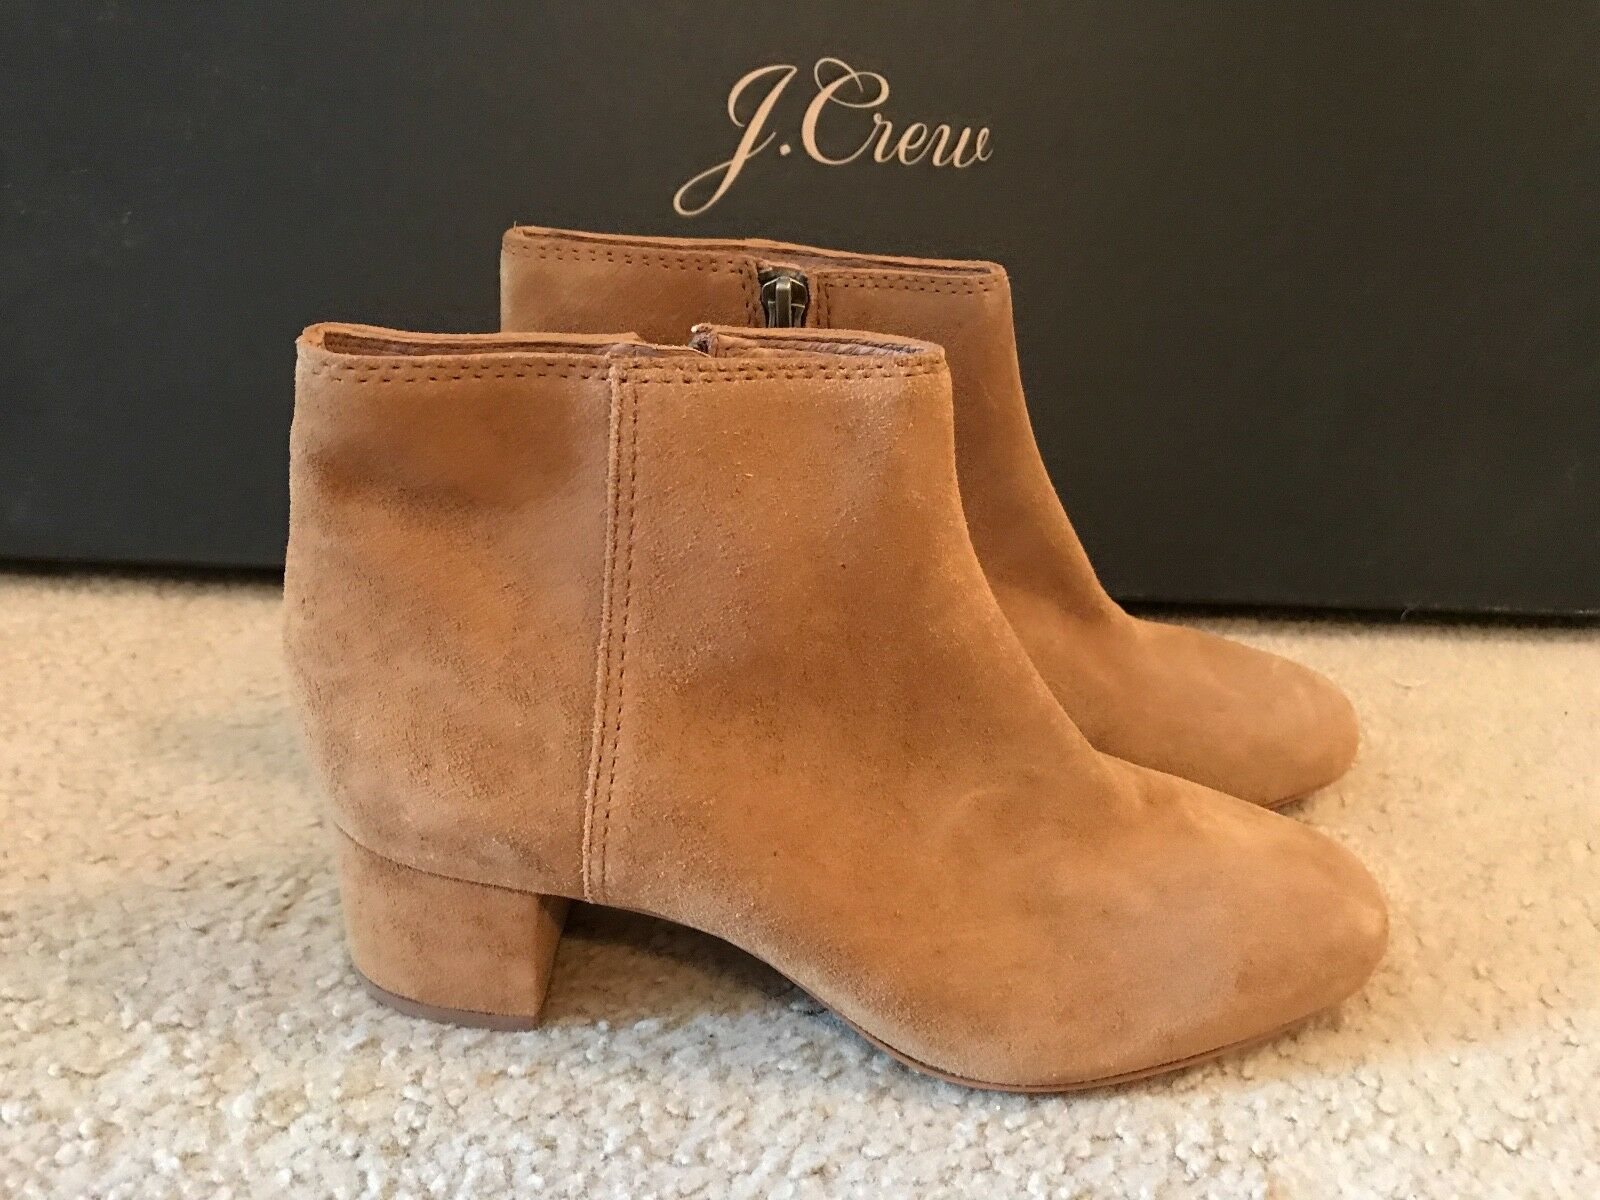 MADEWELL THE LUCIEN BOOT IN SUEDE SIZE SIZE SIZE 9M BRONZED BIRCH G0422 e7d95c